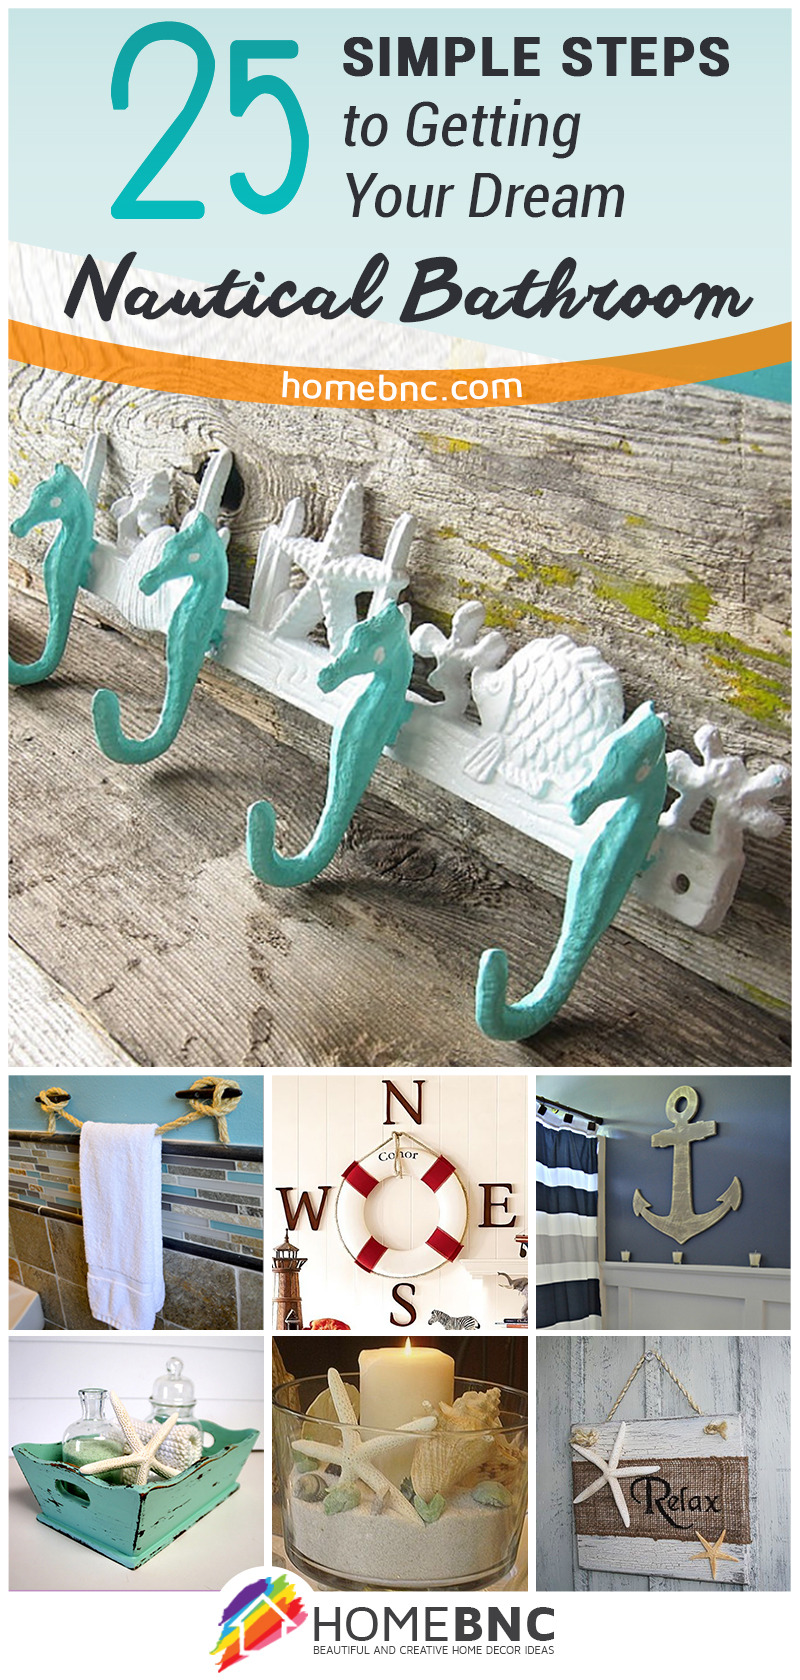 nautical bathroom pinterest share homebnc